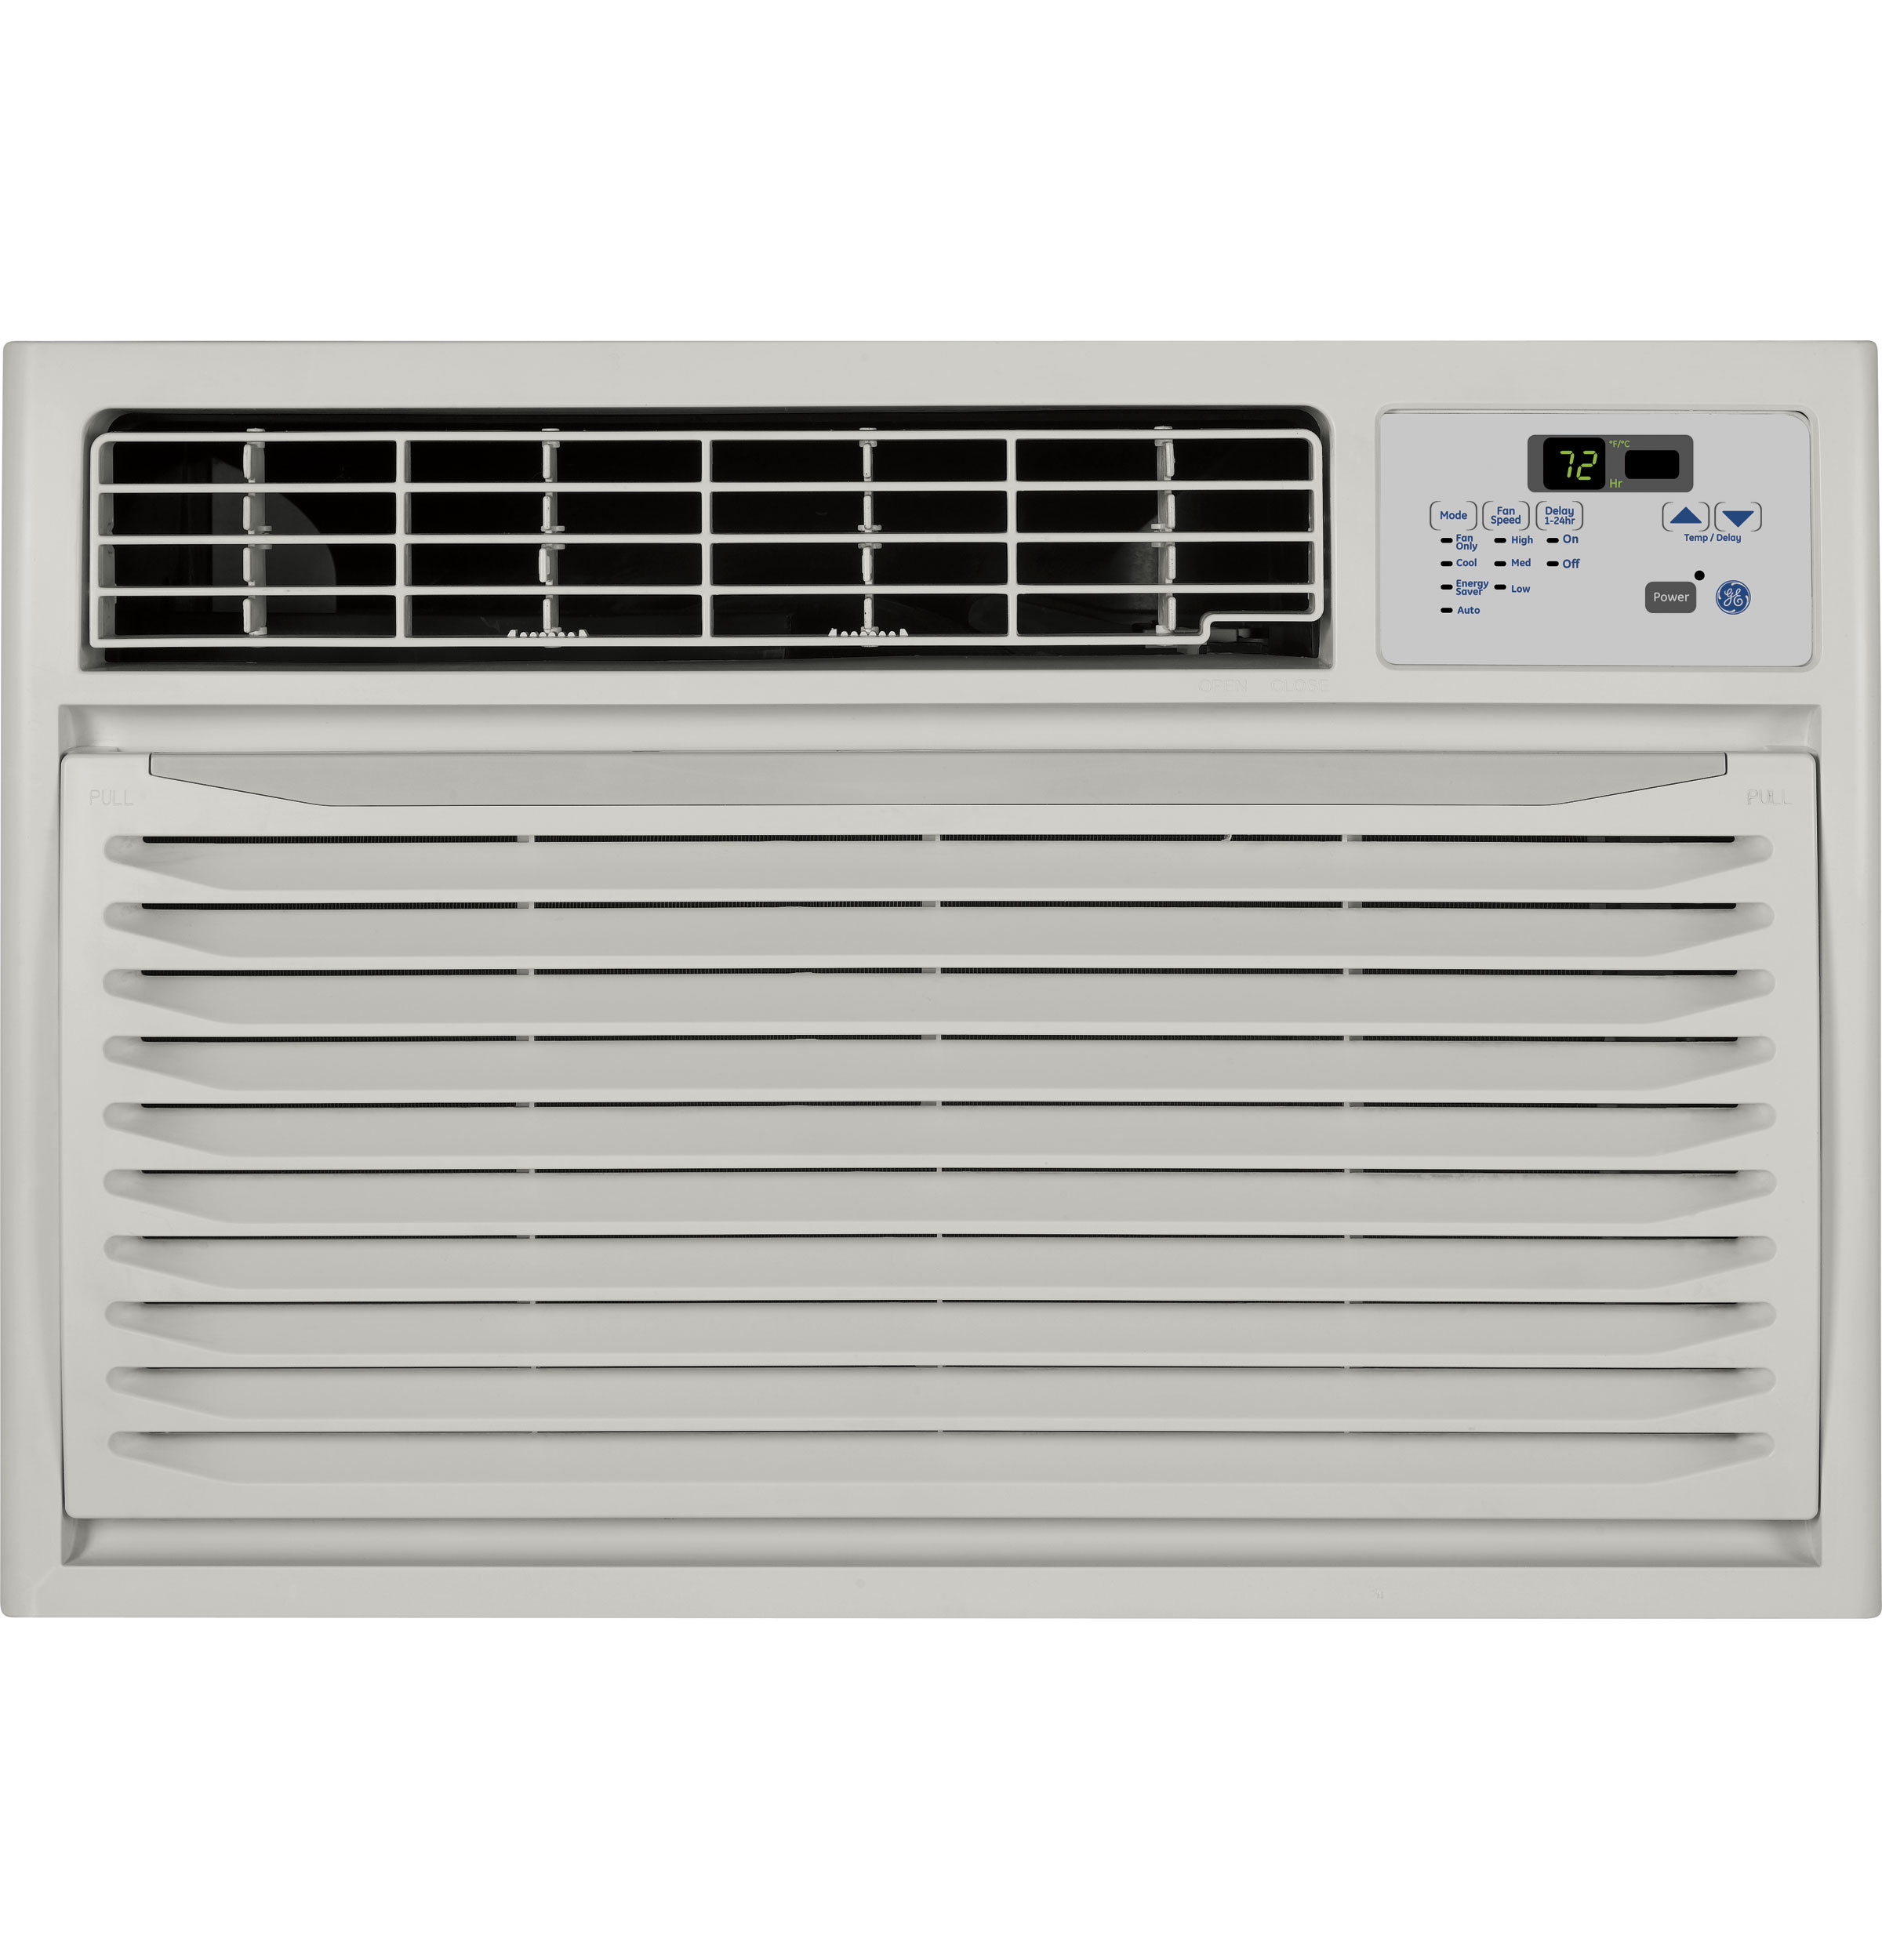 #435D88 Window Air Conditioning Units And Wall Air Conditioners Brand New 12321 Home Depot Air Conditioner Window Unit images with 2400x2500 px on helpvideos.info - Air Conditioners, Air Coolers and more